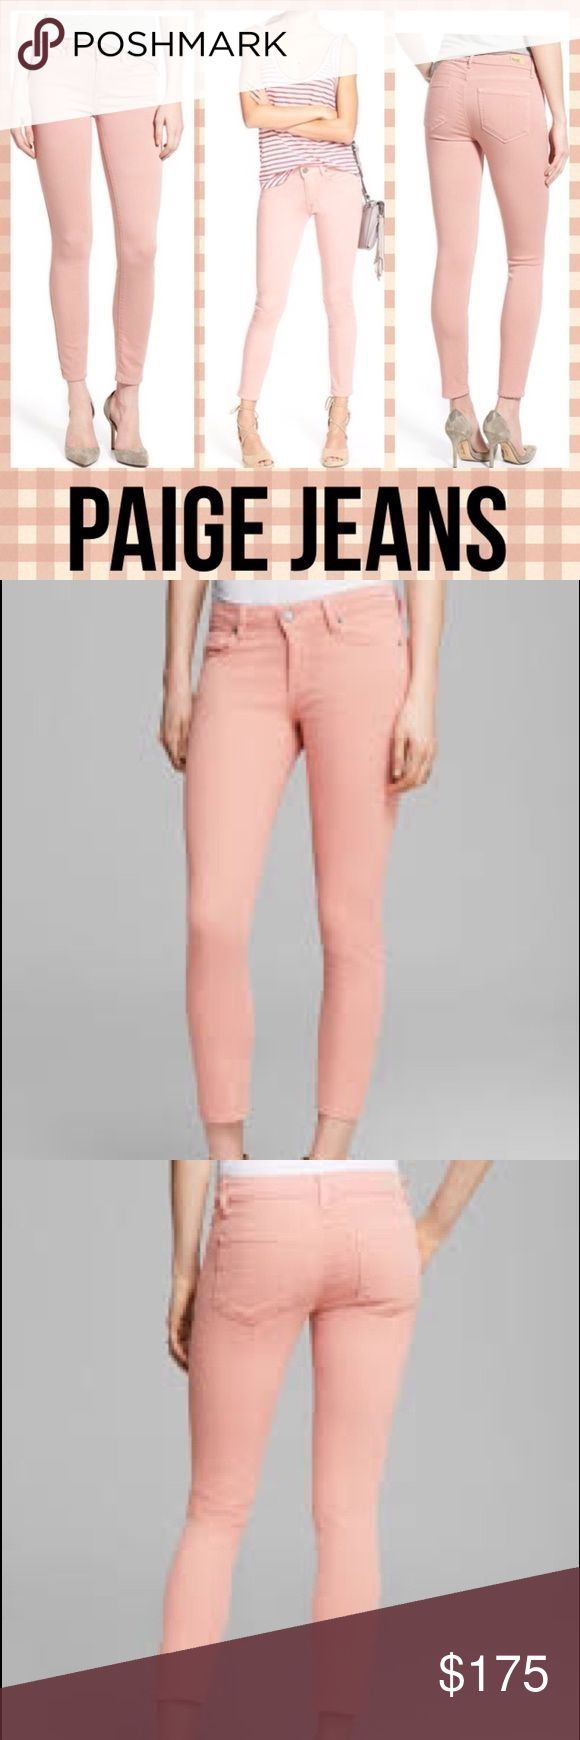 PAIGE VERDUGO ANKLE - SOFT PINK Redefining the standards of luxury, the Verdugo Ankle jean features our innovative, TRANSCEND fiber technology that promises a luxuriously soft feel, comfortable fit and unyielding support. This best-selling silhouette is transformed with a Soft Pink coloring to give your wardrobe basic a modern update. A slightly shorter inseam falls just above the ankle bone for an elongating effect, while our ultra skinny fit gives this denim versatile styling potential…